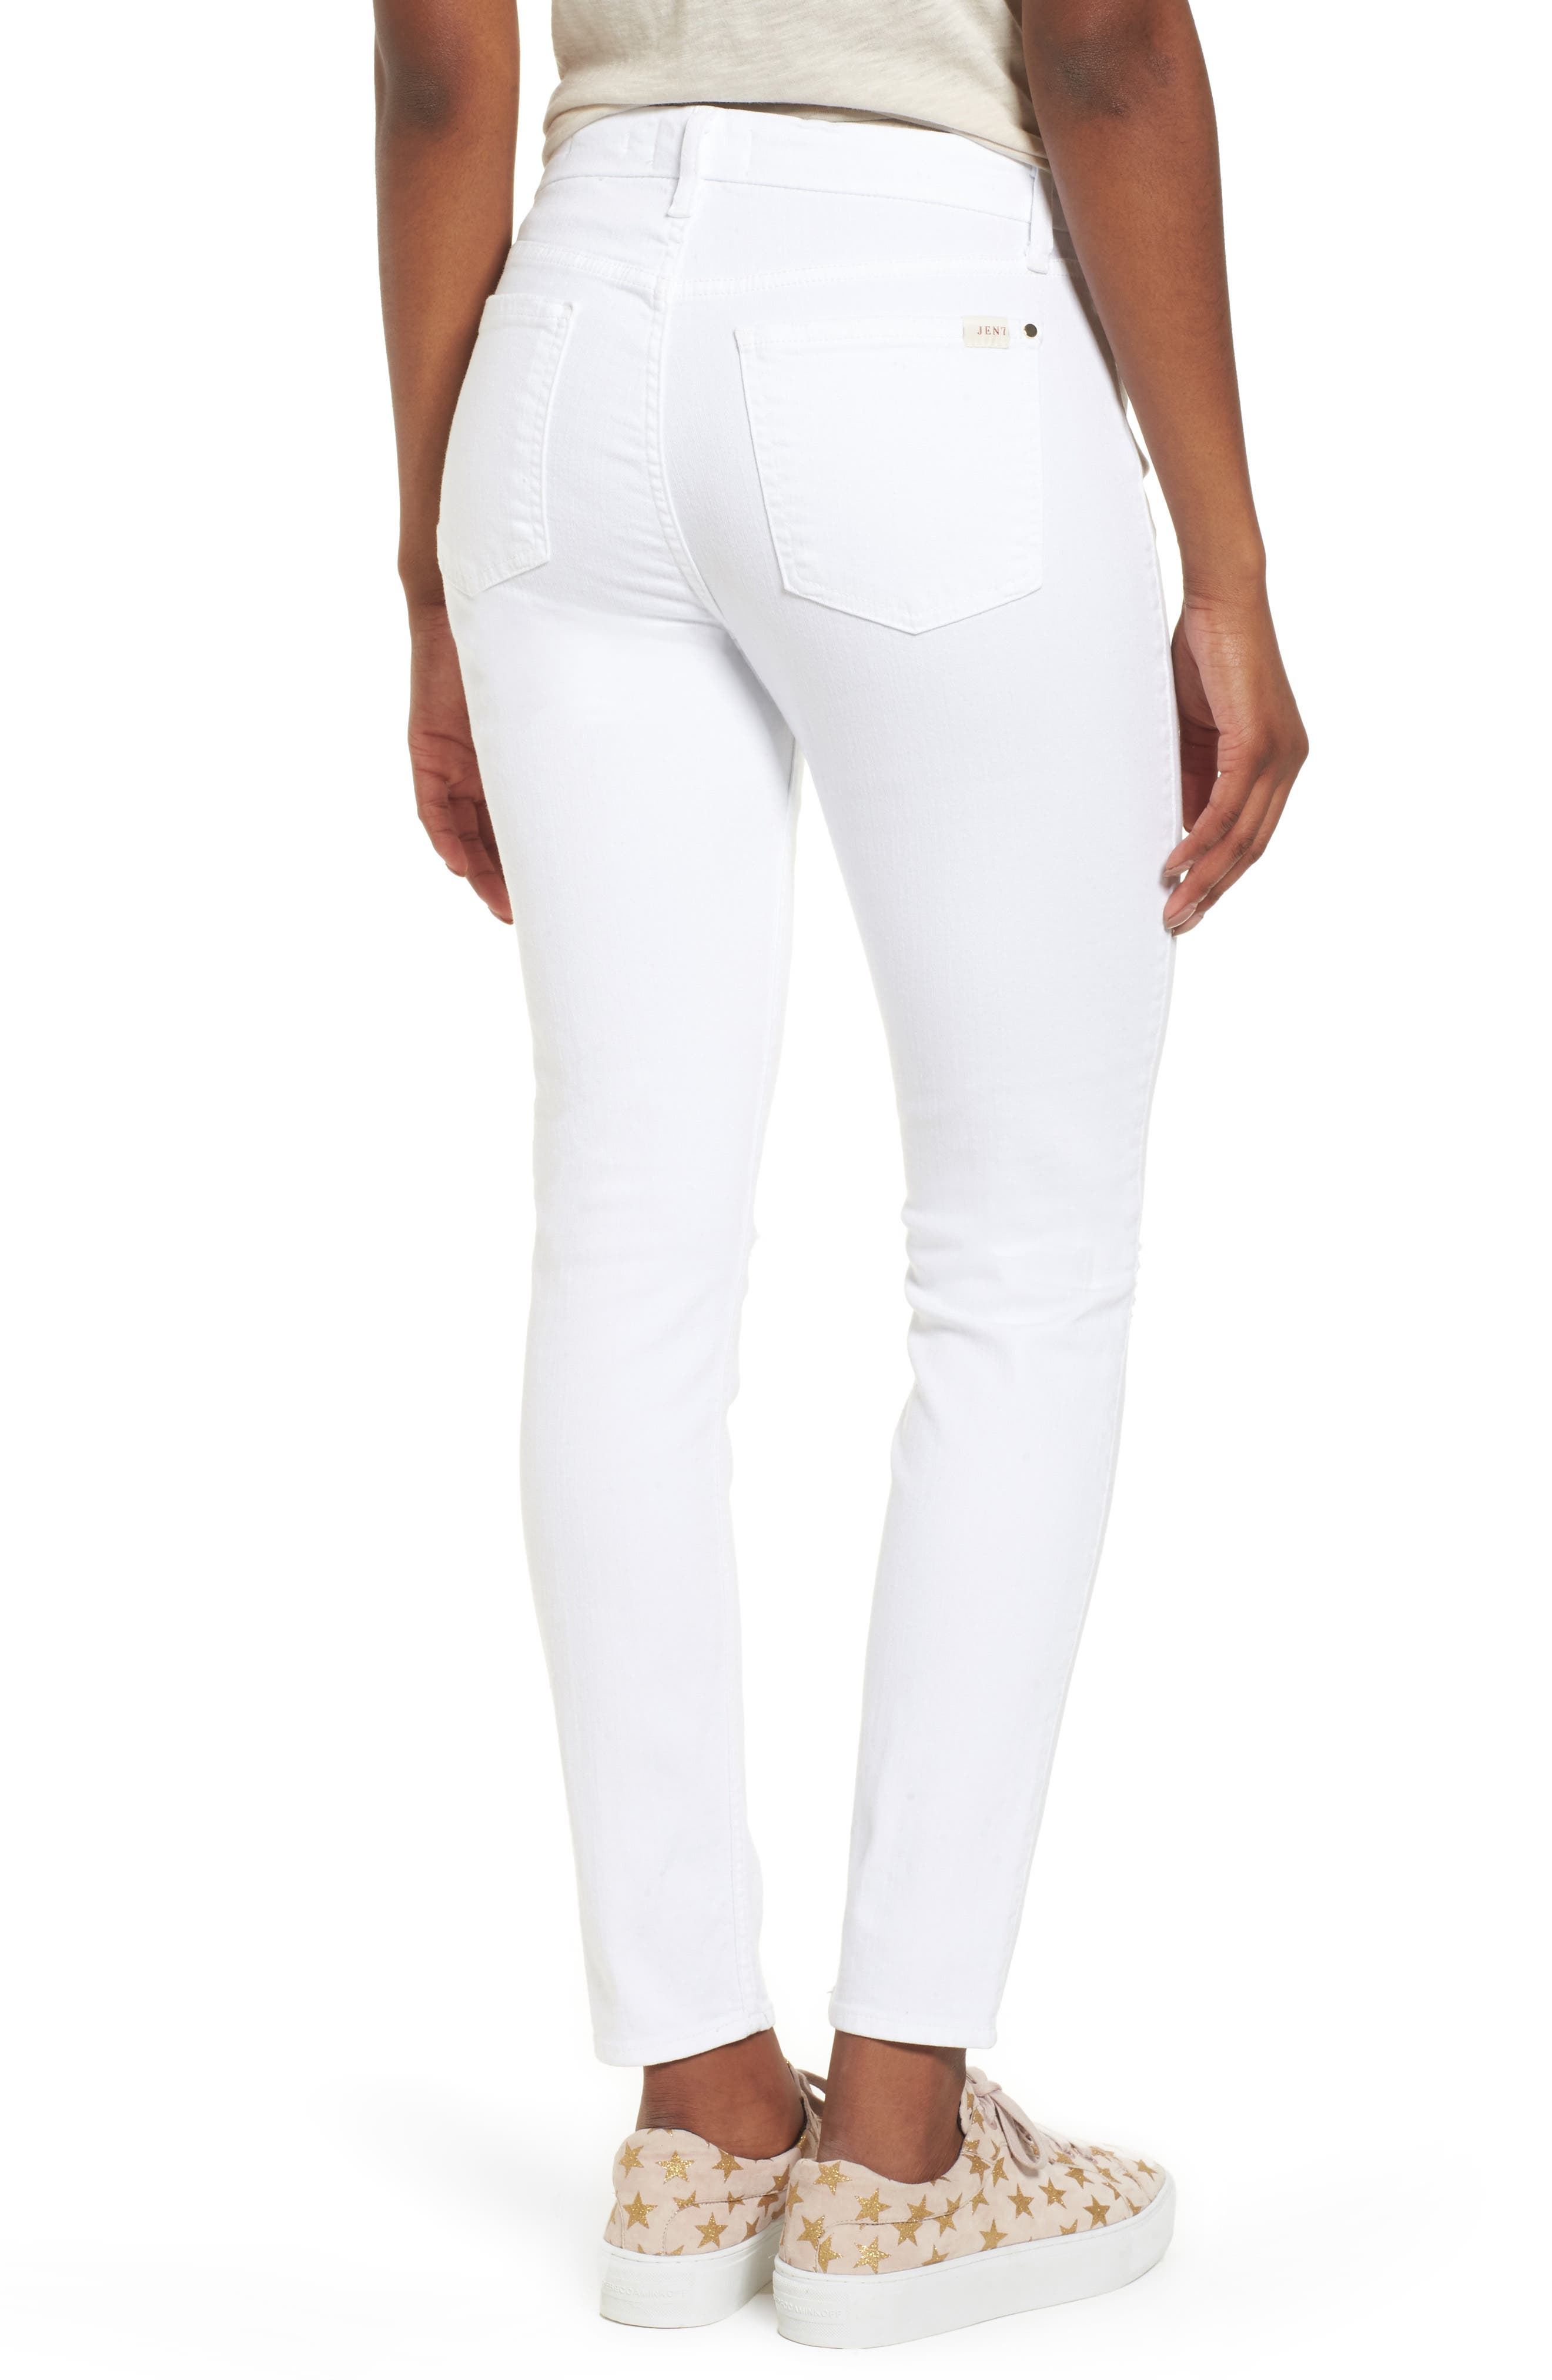 JEN7 BY 7 FOR ALL MANKIND, Ankle Skinny Jeans, Alternate thumbnail 2, color, WHITE 2